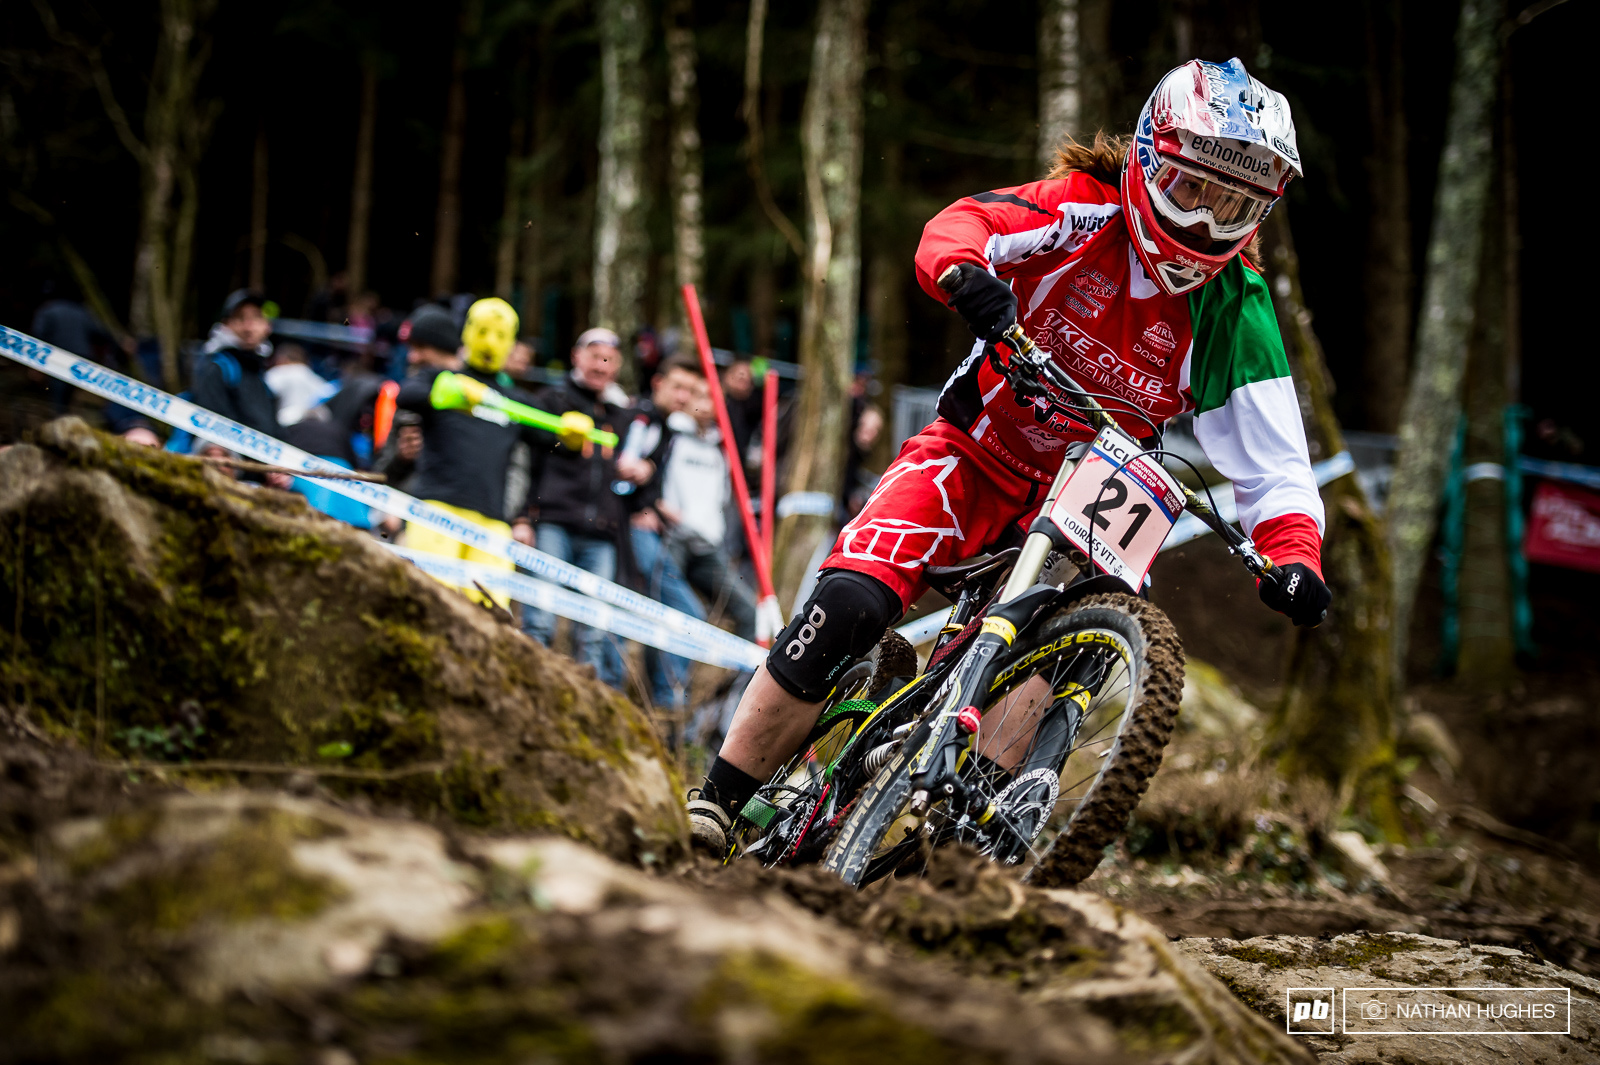 The young Italian national champ Veronika Widmann pulled out all the stops in the mud this afternoon flying into sixth place.